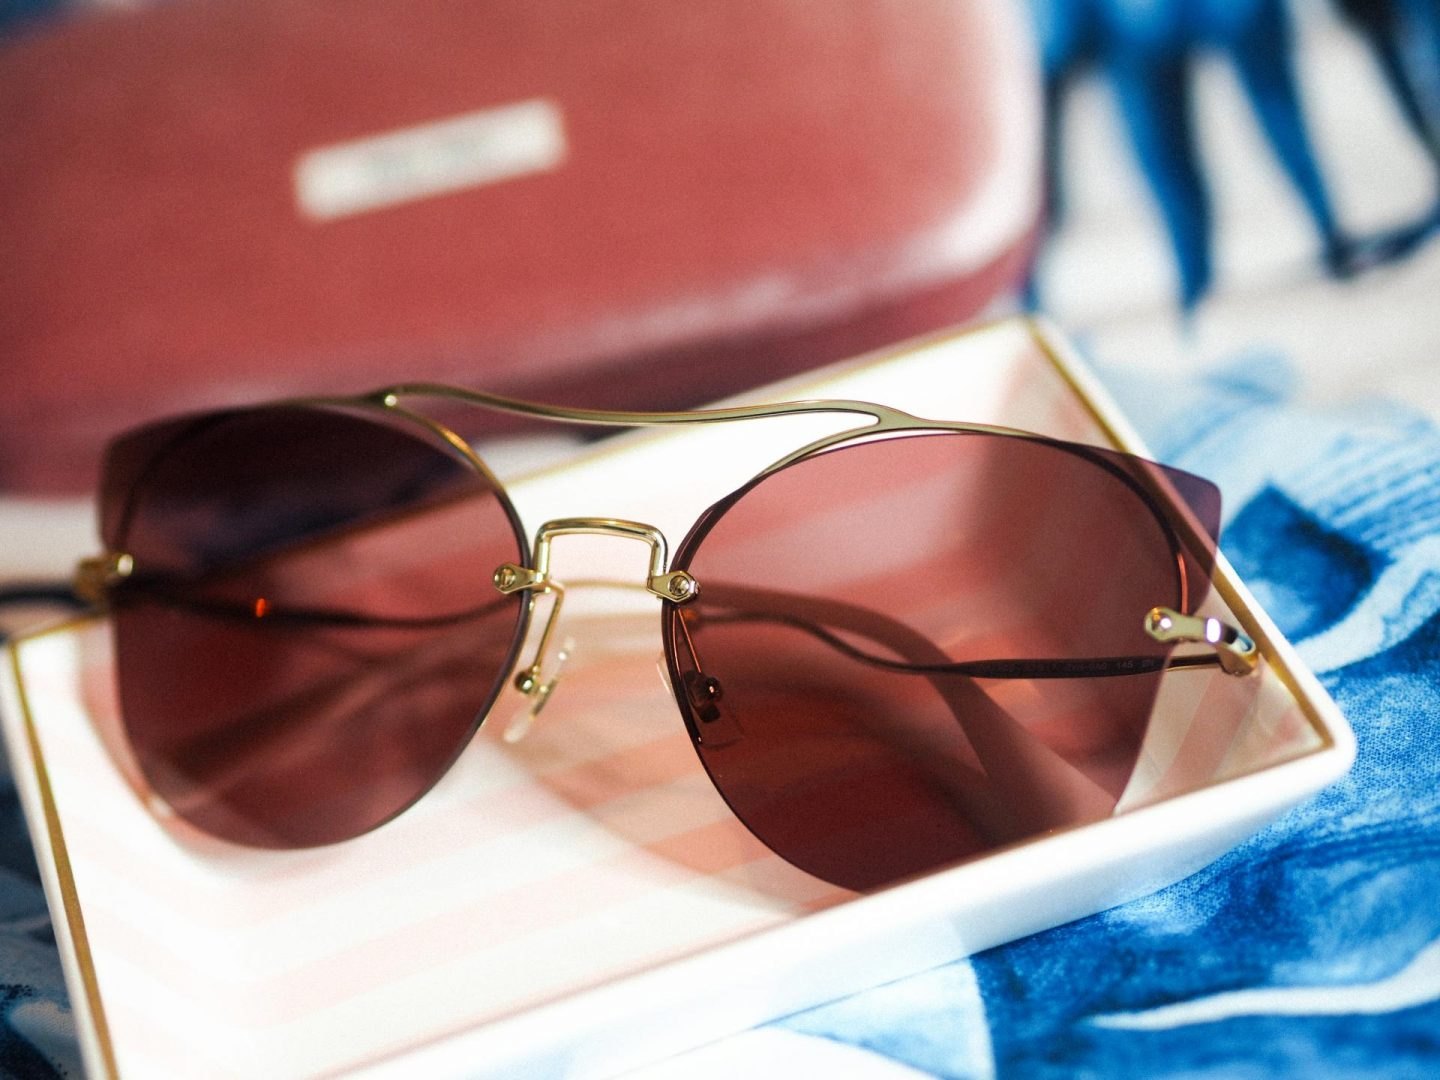 Miu Miu MU52SS Sunglasses from SmartBuyGlasses - Rachel Nicole UK Blogger